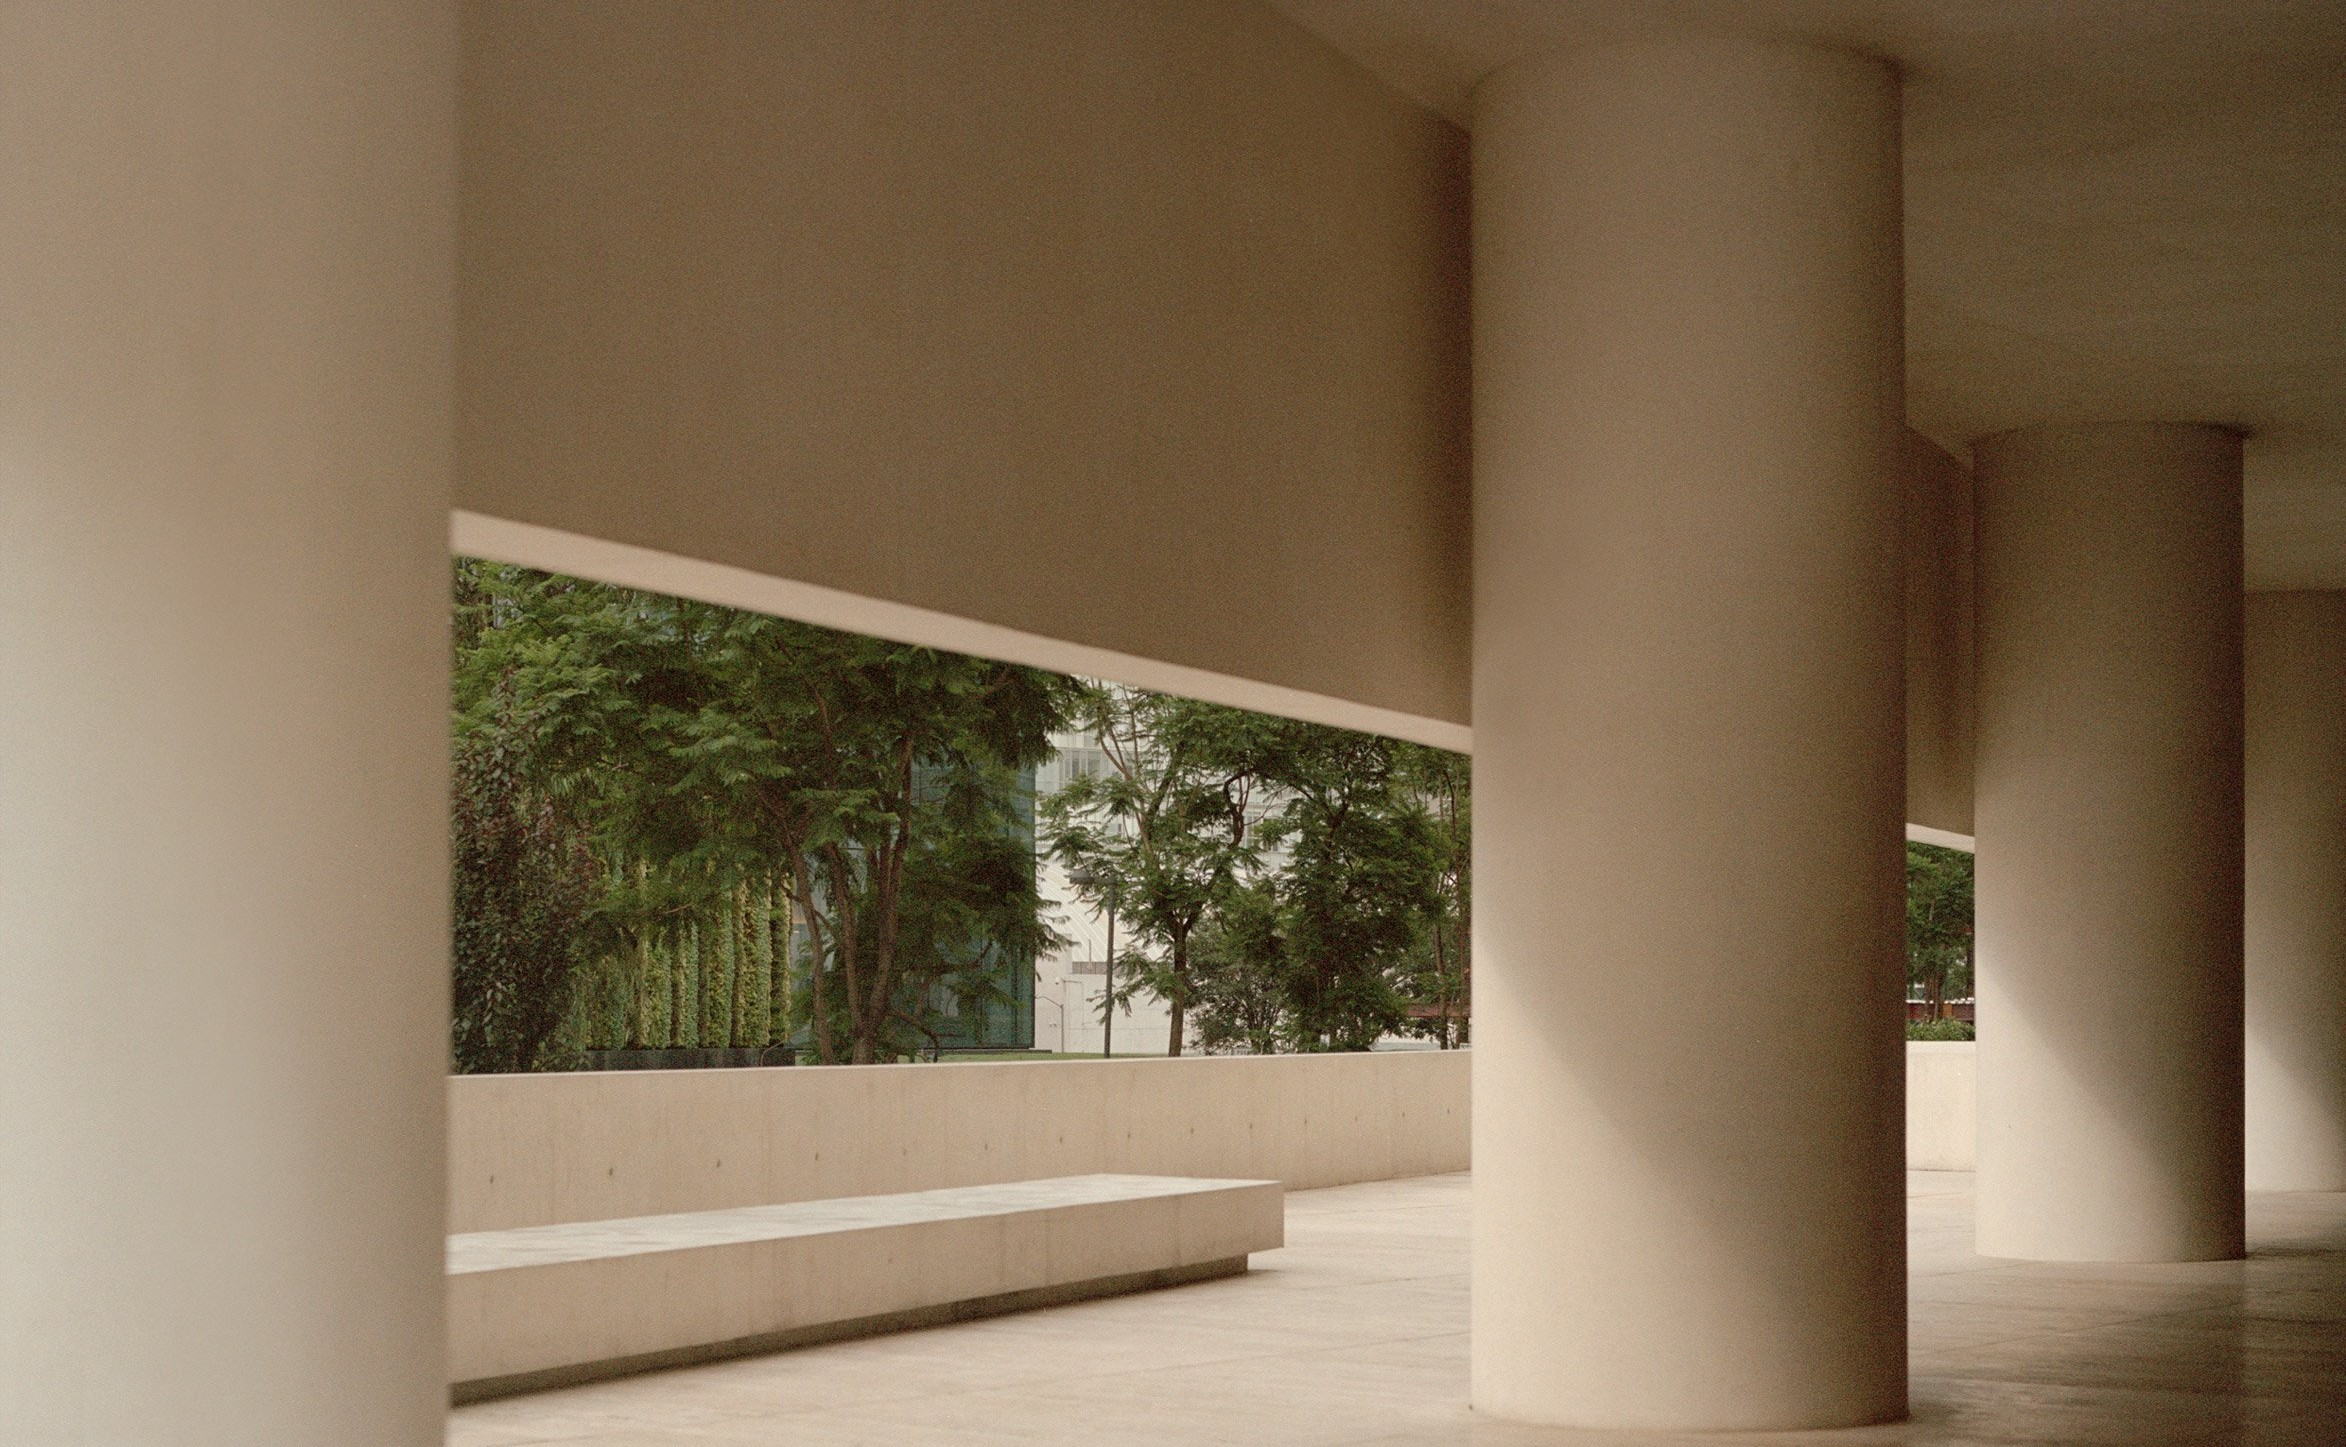 museo-jumex-david-chipperfield-architects-and-photographed-rory-gardiner_dezeen_2364_col_8